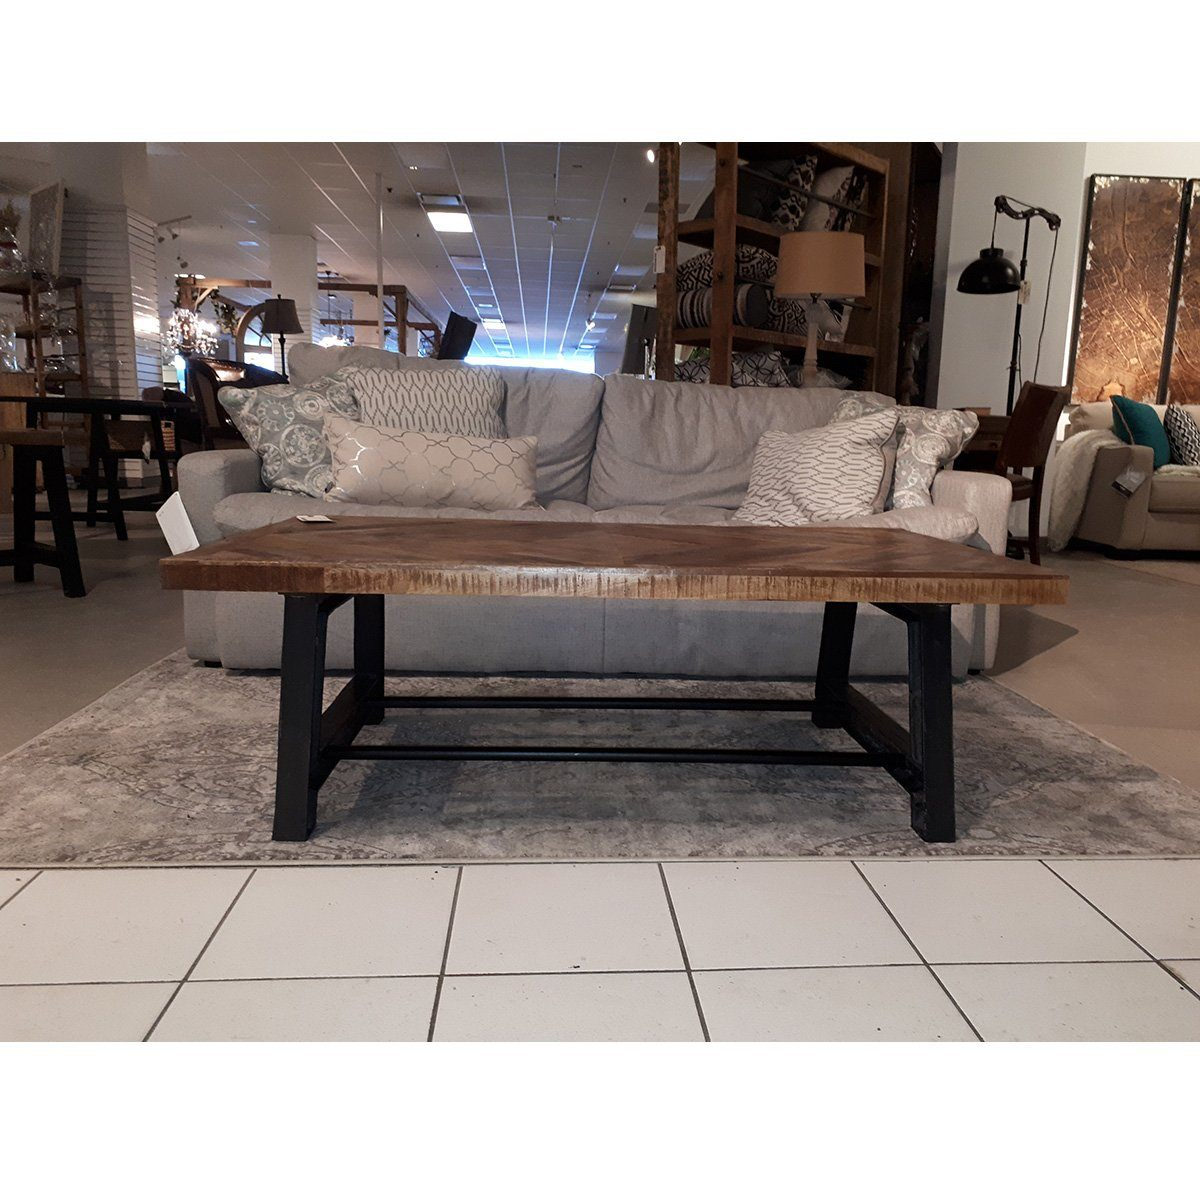 Iron Waite Coffee Table - Showhome Furniture